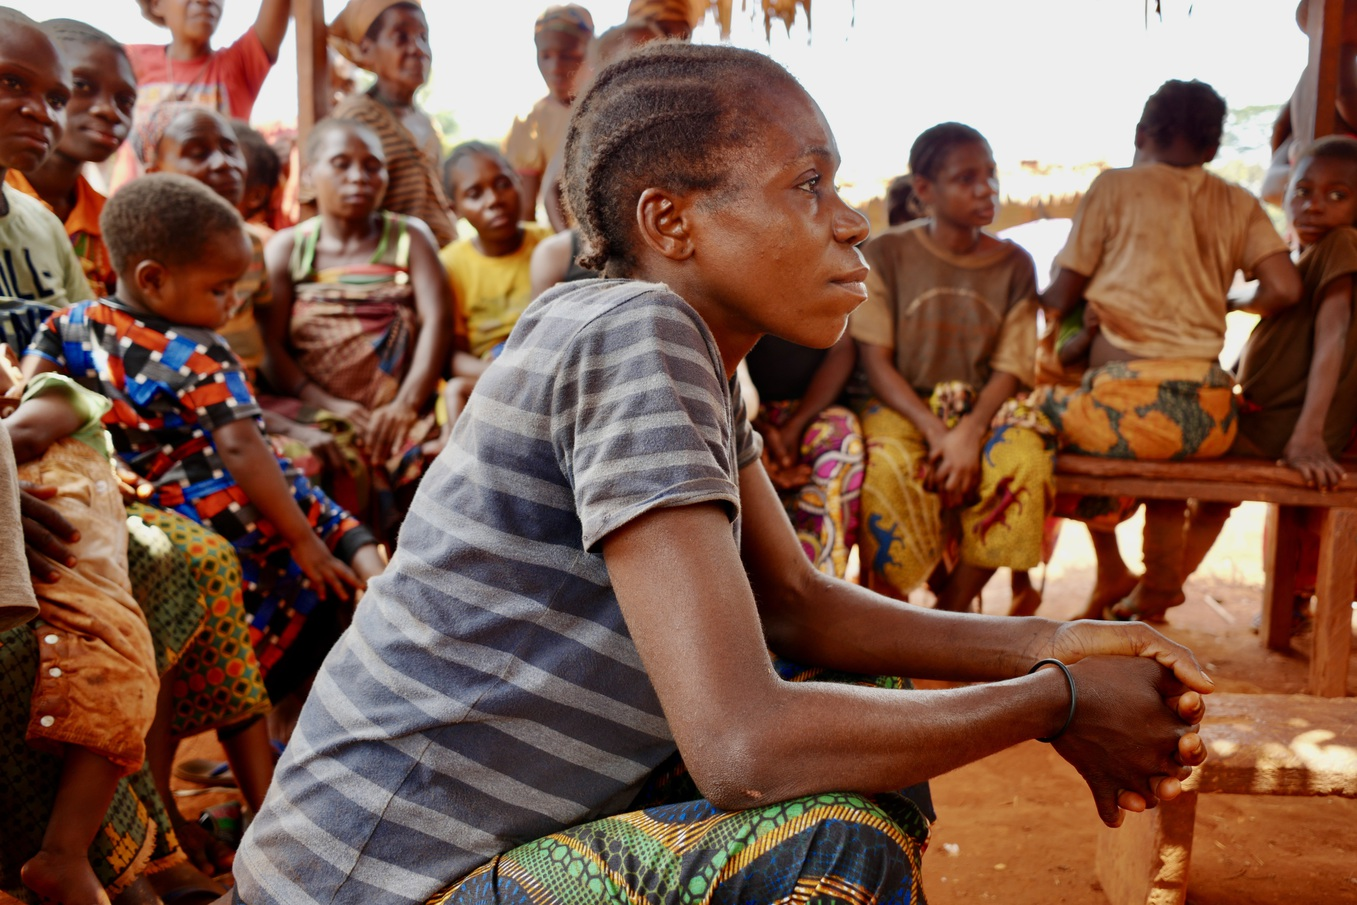 Policy Brief – Strengthening Land Security for Internally Displaced Persons in Cameroon